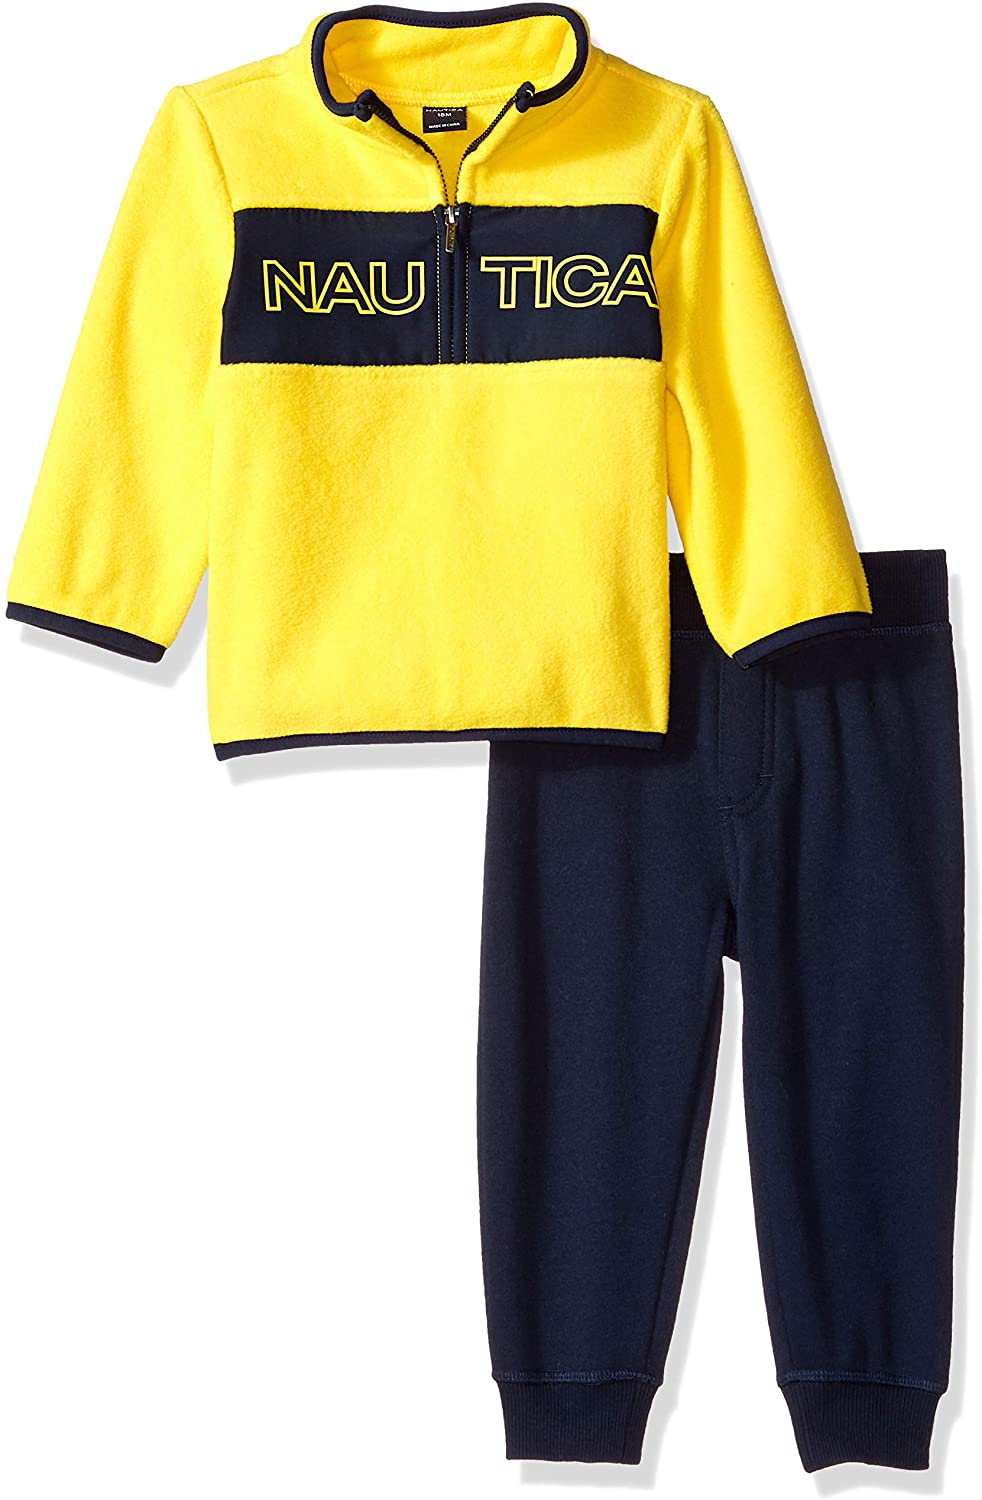 Nautica Kids & Baby 2 Pieces Pullover Pants Set, Yellow/Navy, 18M